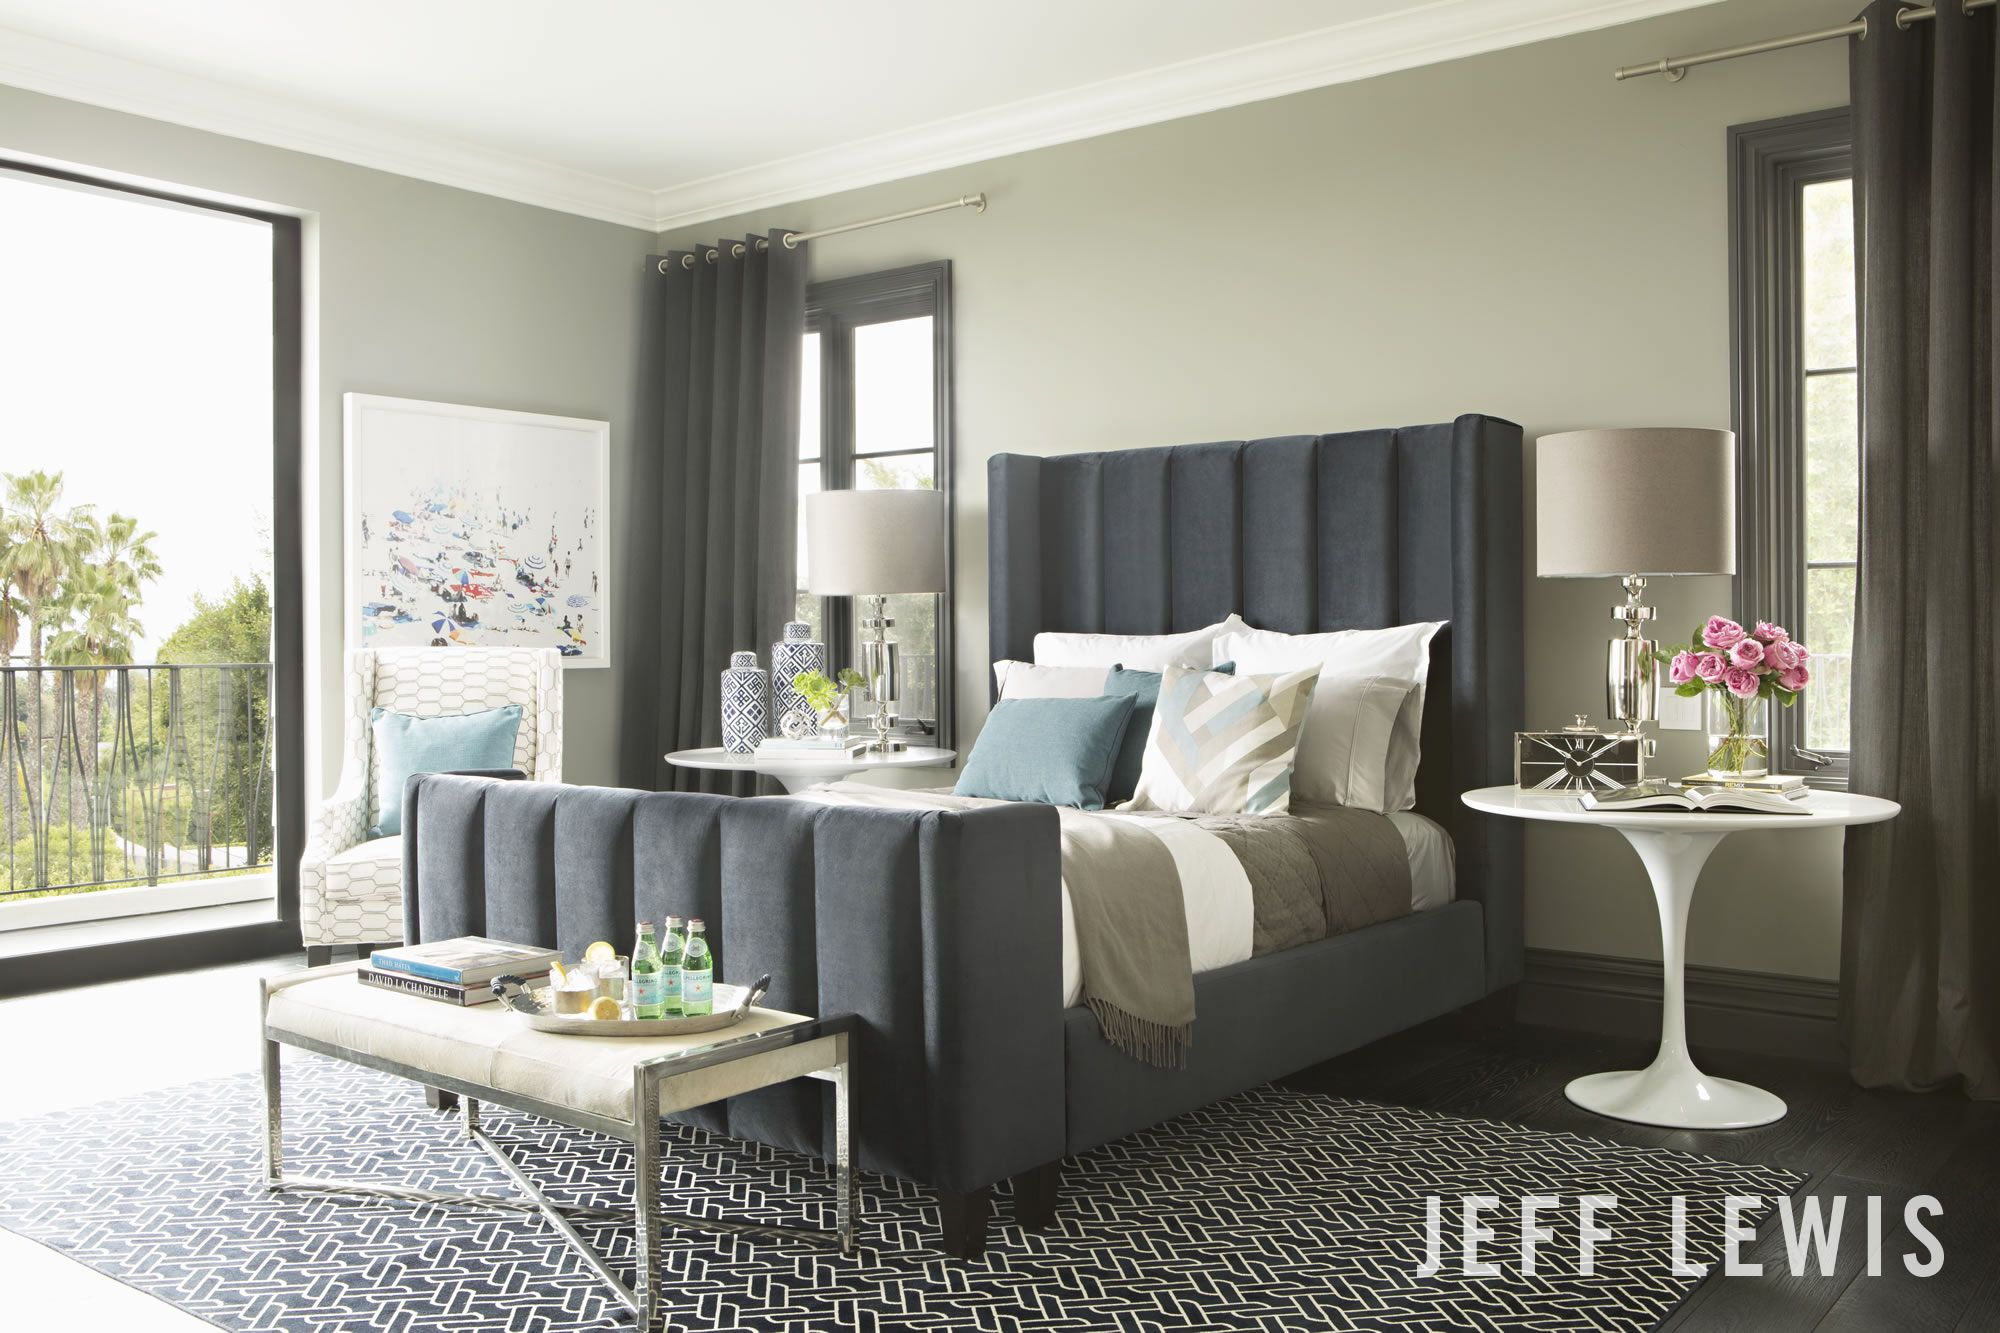 our monroe bed is worthy of five star hotel residency